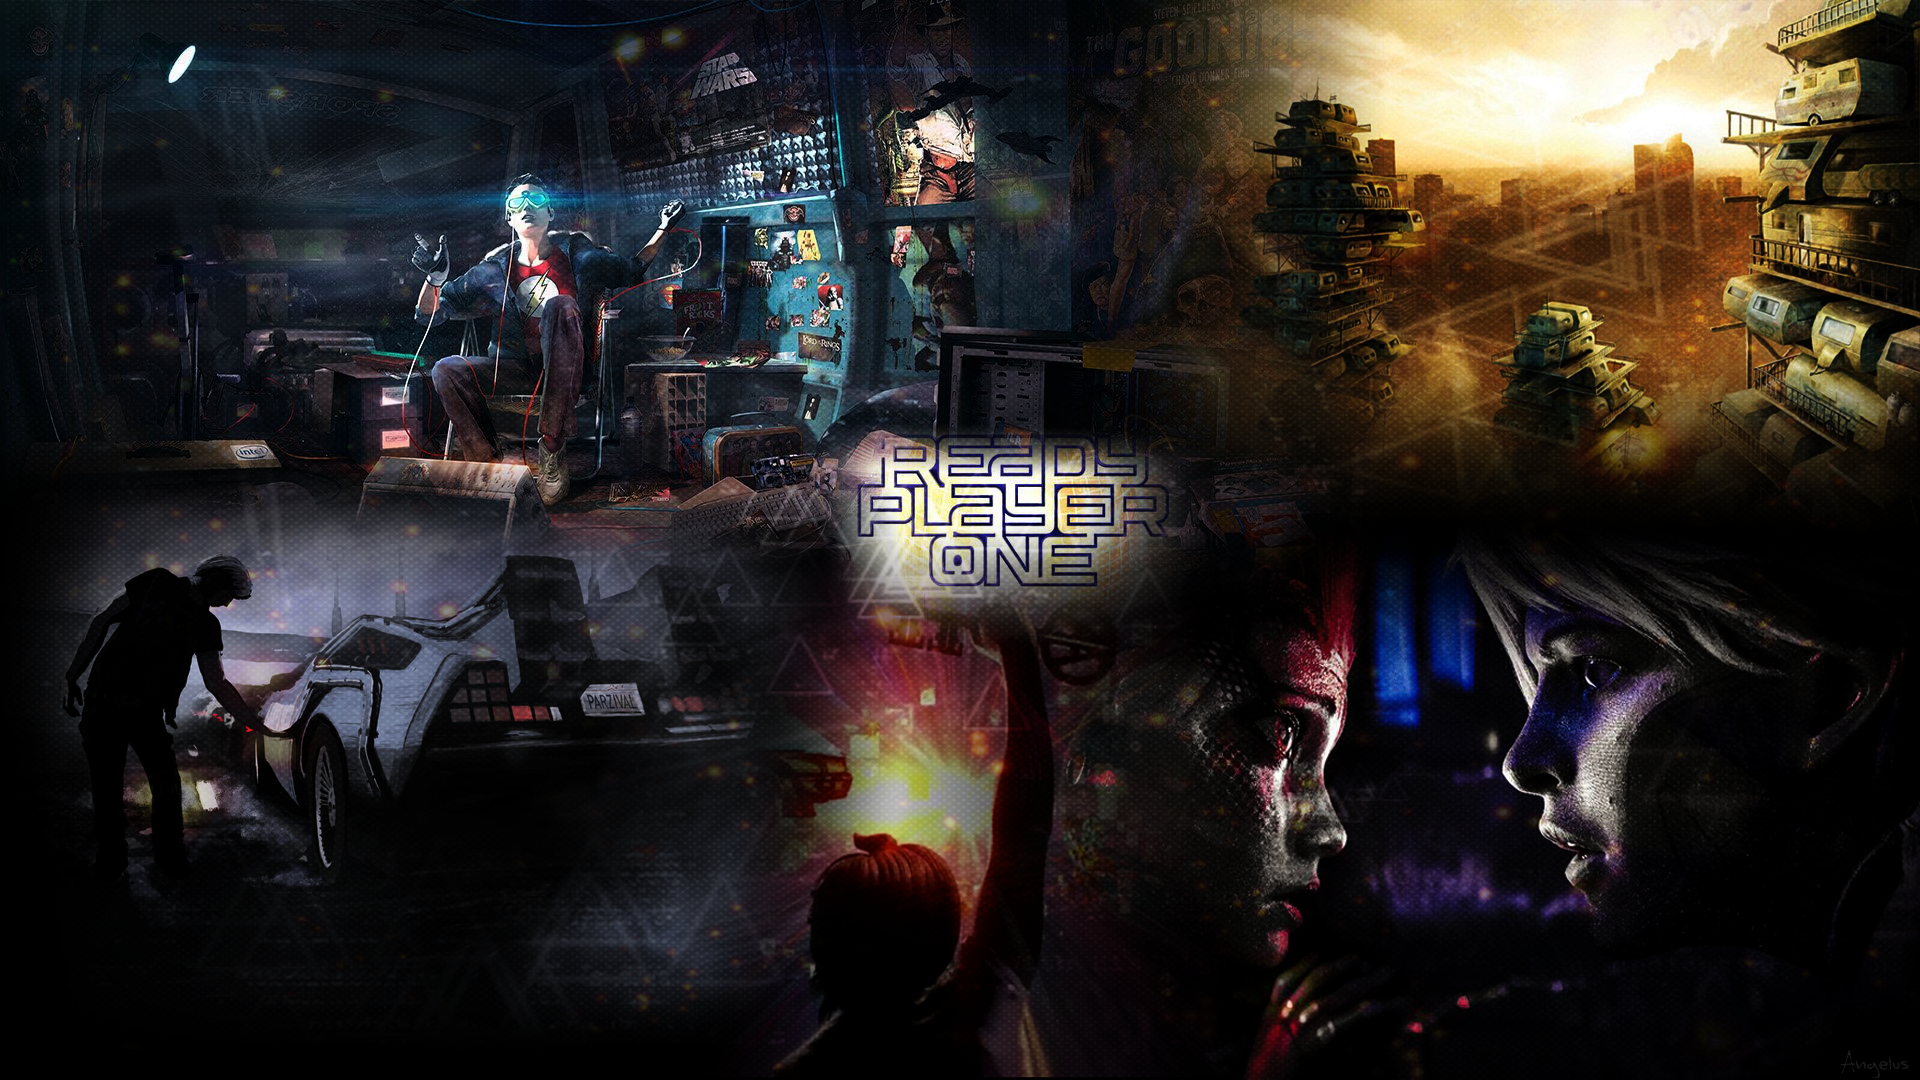 Ready Player One Hd Wallpaper 1080p By Angelus23 On Deviantart